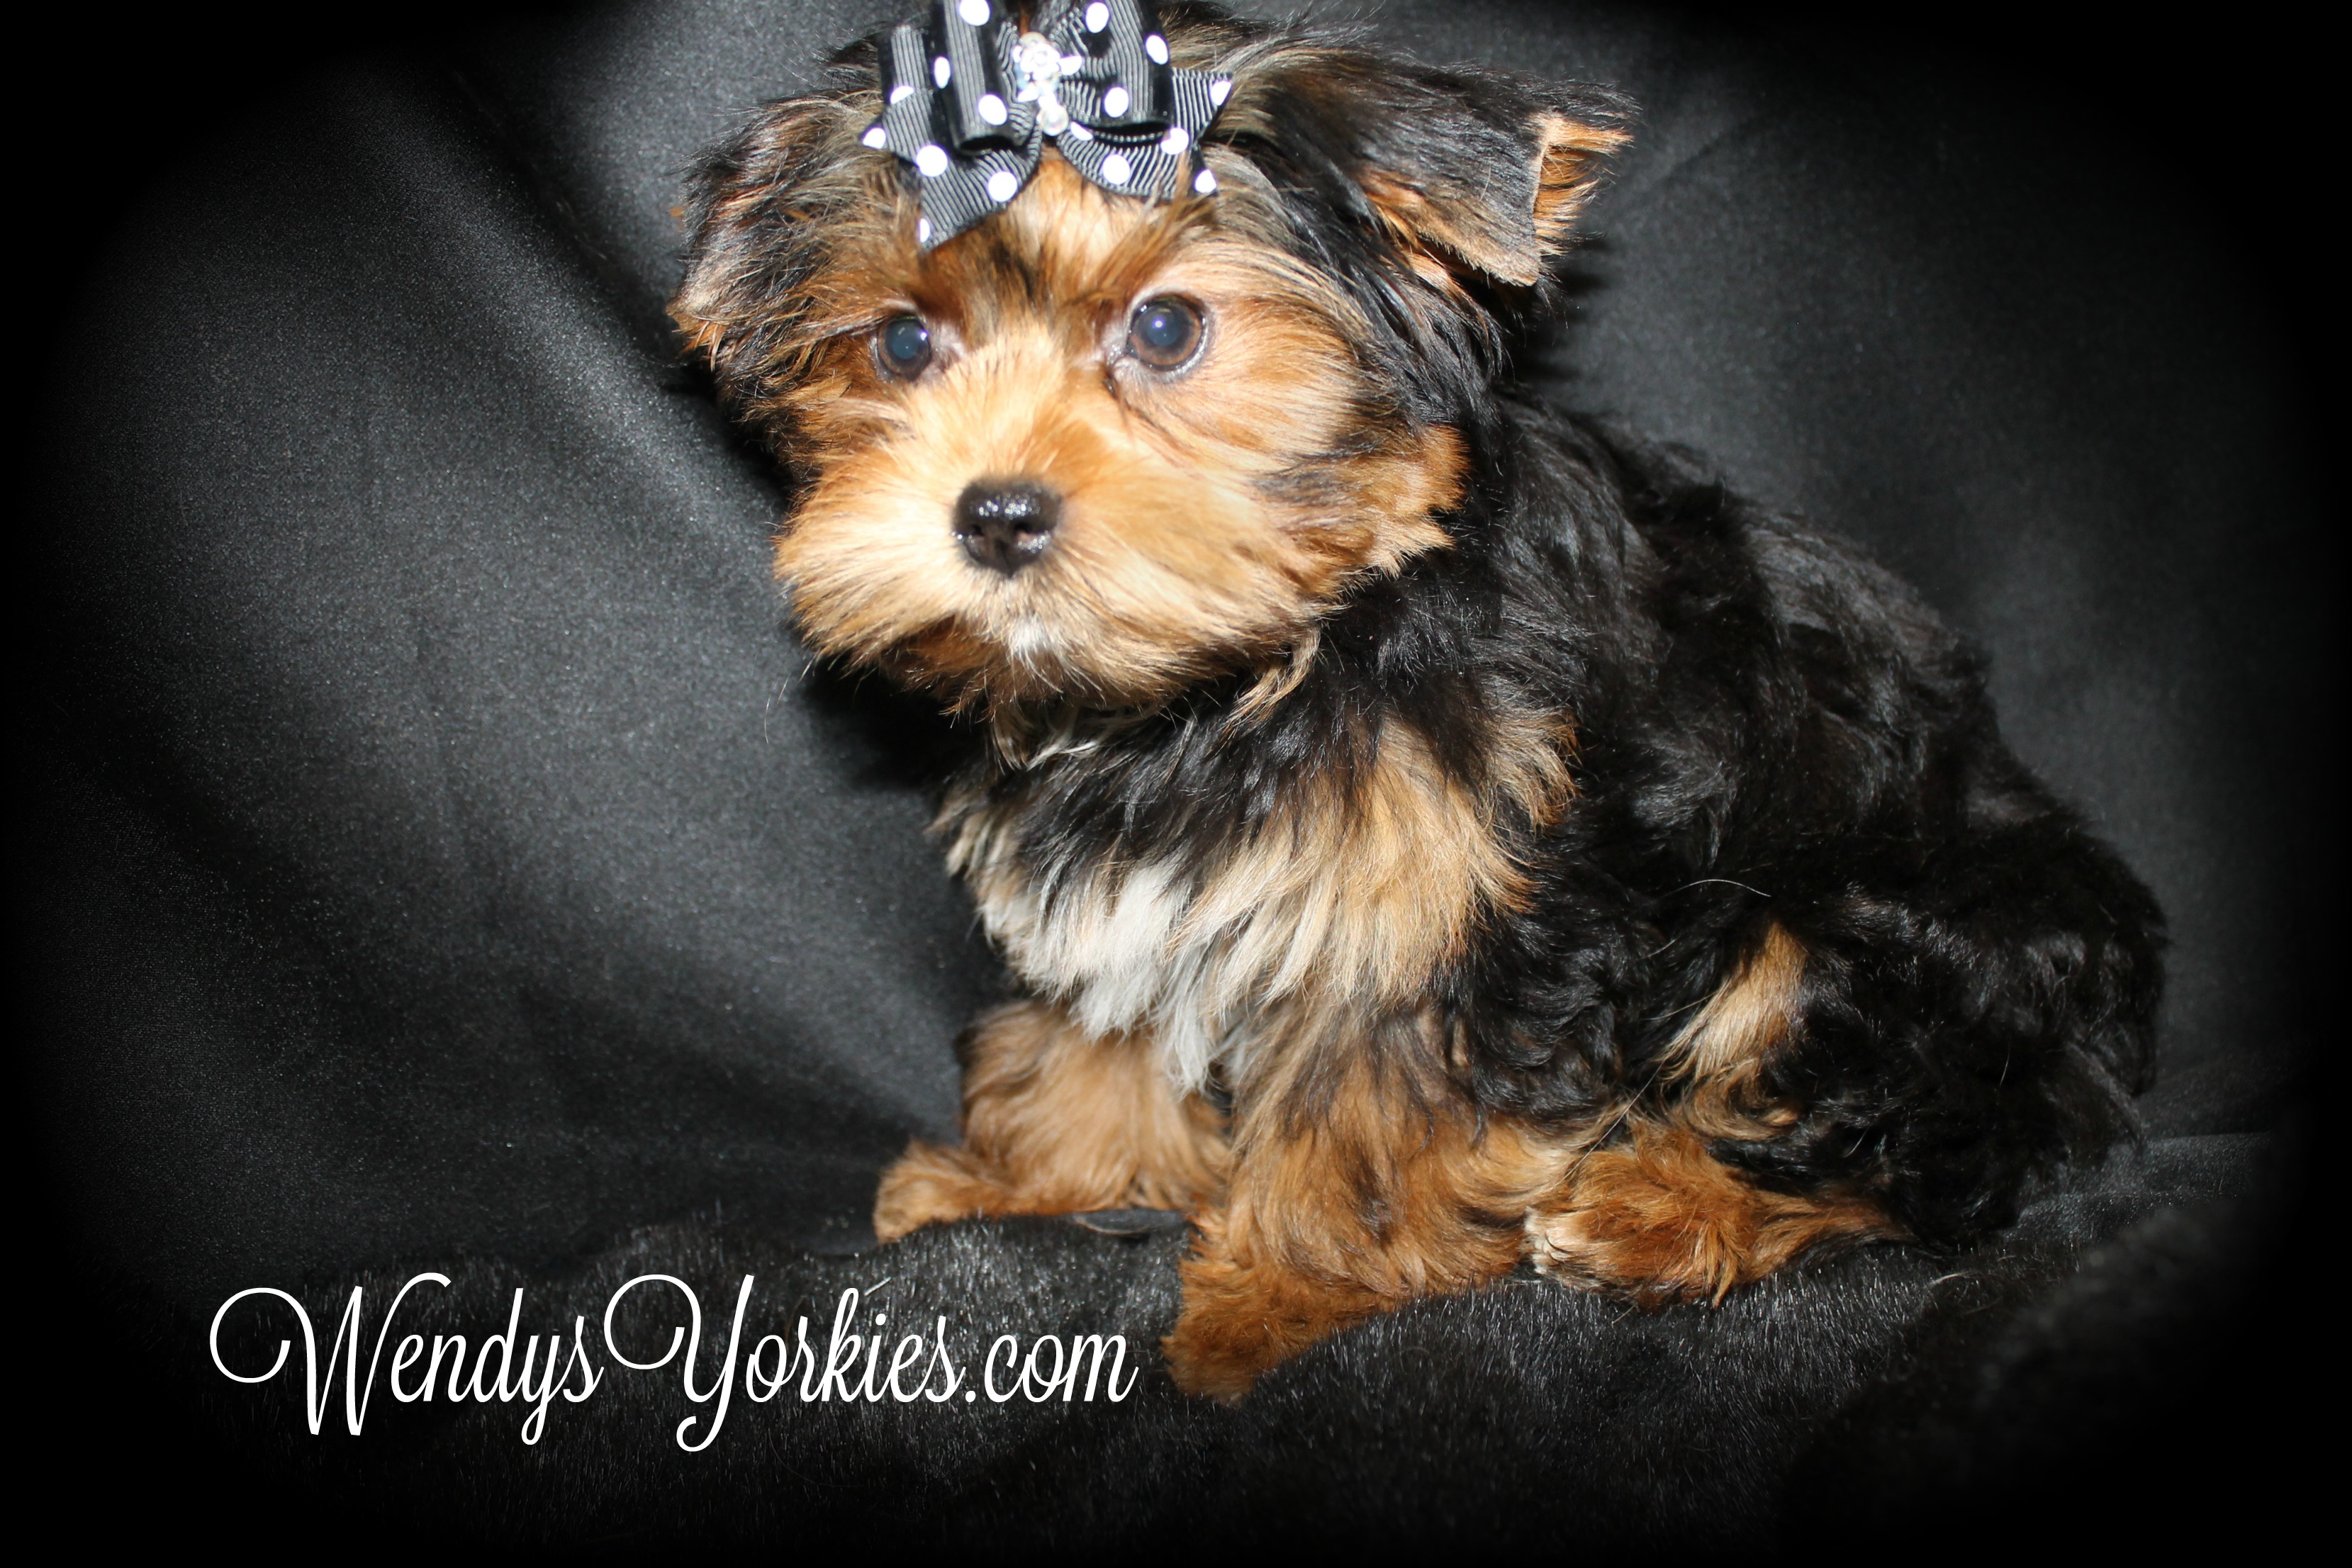 Teacup Female Yorkie puppy for sale, WendysYorkies.com, PhoebeDixie